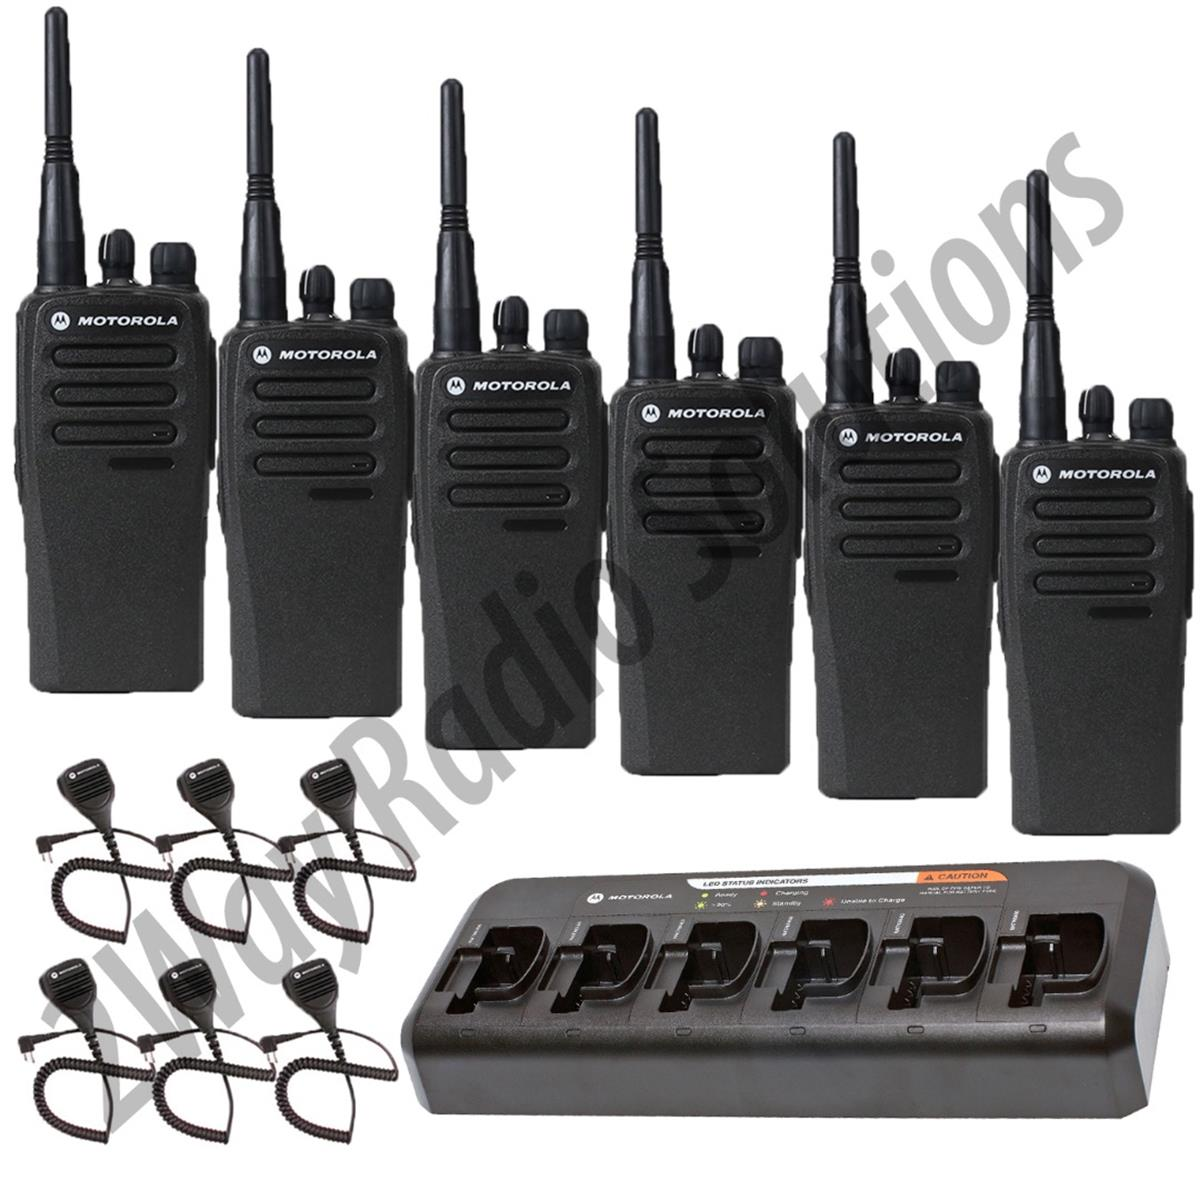 Motorola CP200d Radio 6 Pack with Multi-Charger and Speaker Mics